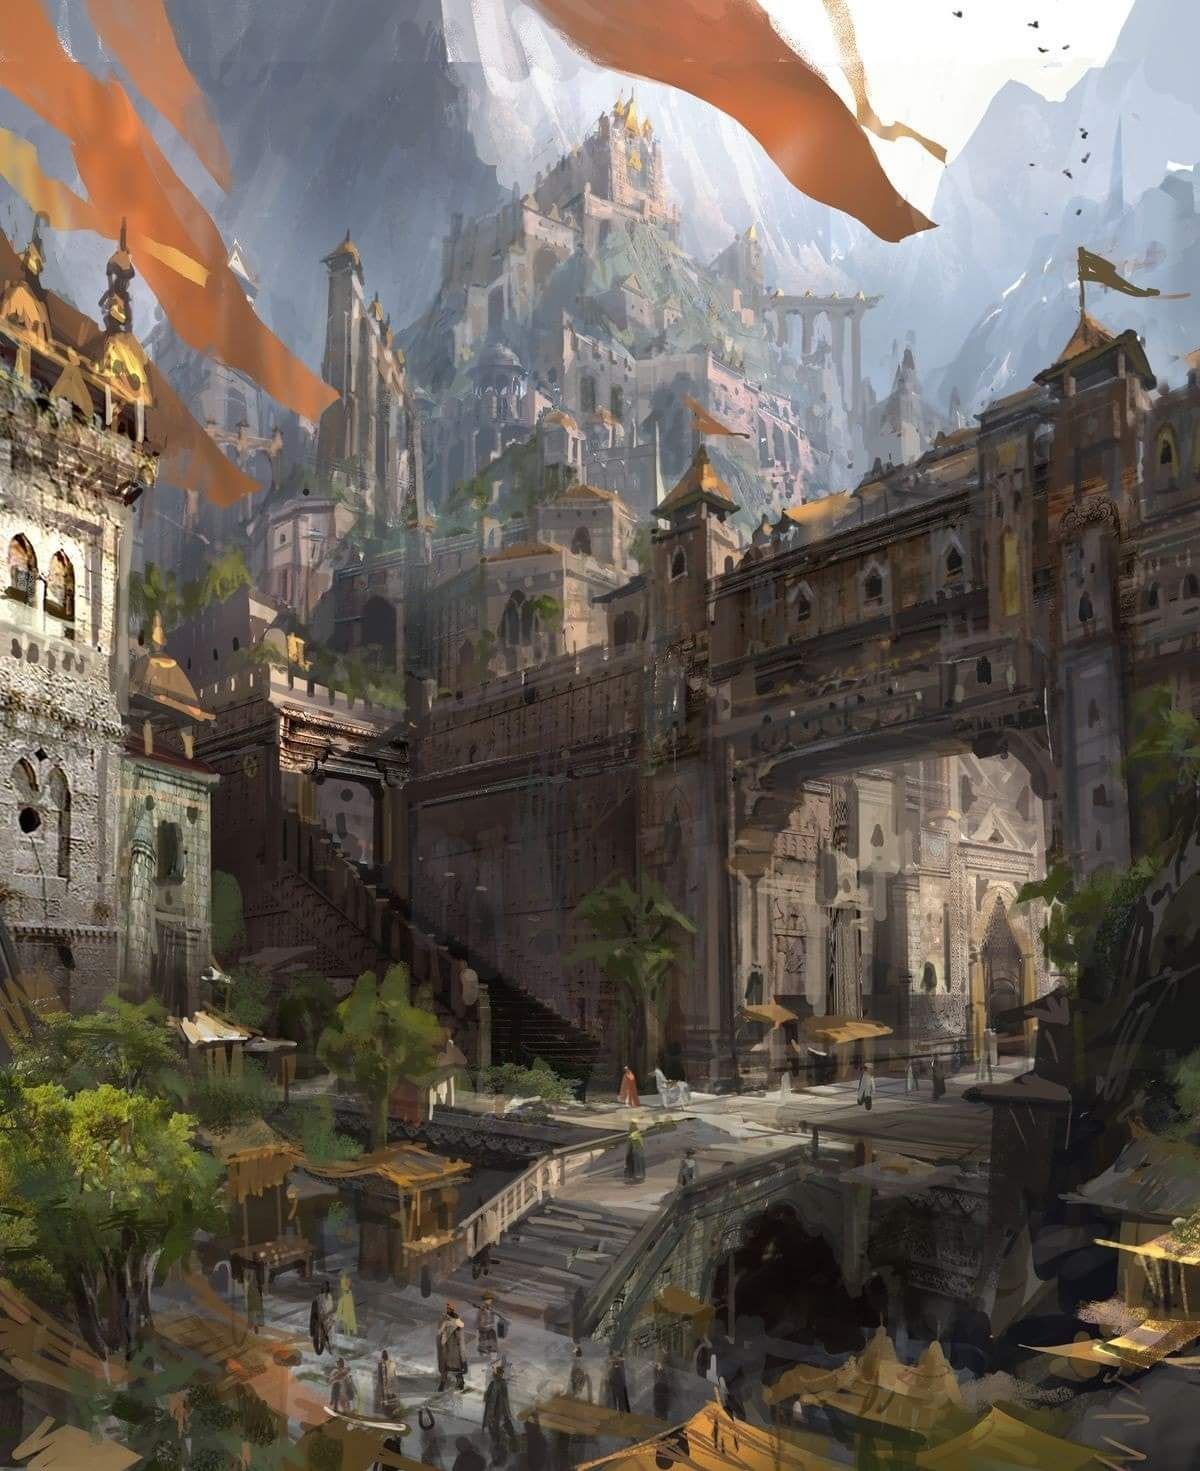 Medieval Fantasy Cities : medieval, fantasy, cities, Fantasy, Inspiration., Artist, Unknown., Landscapes,, Landscape,